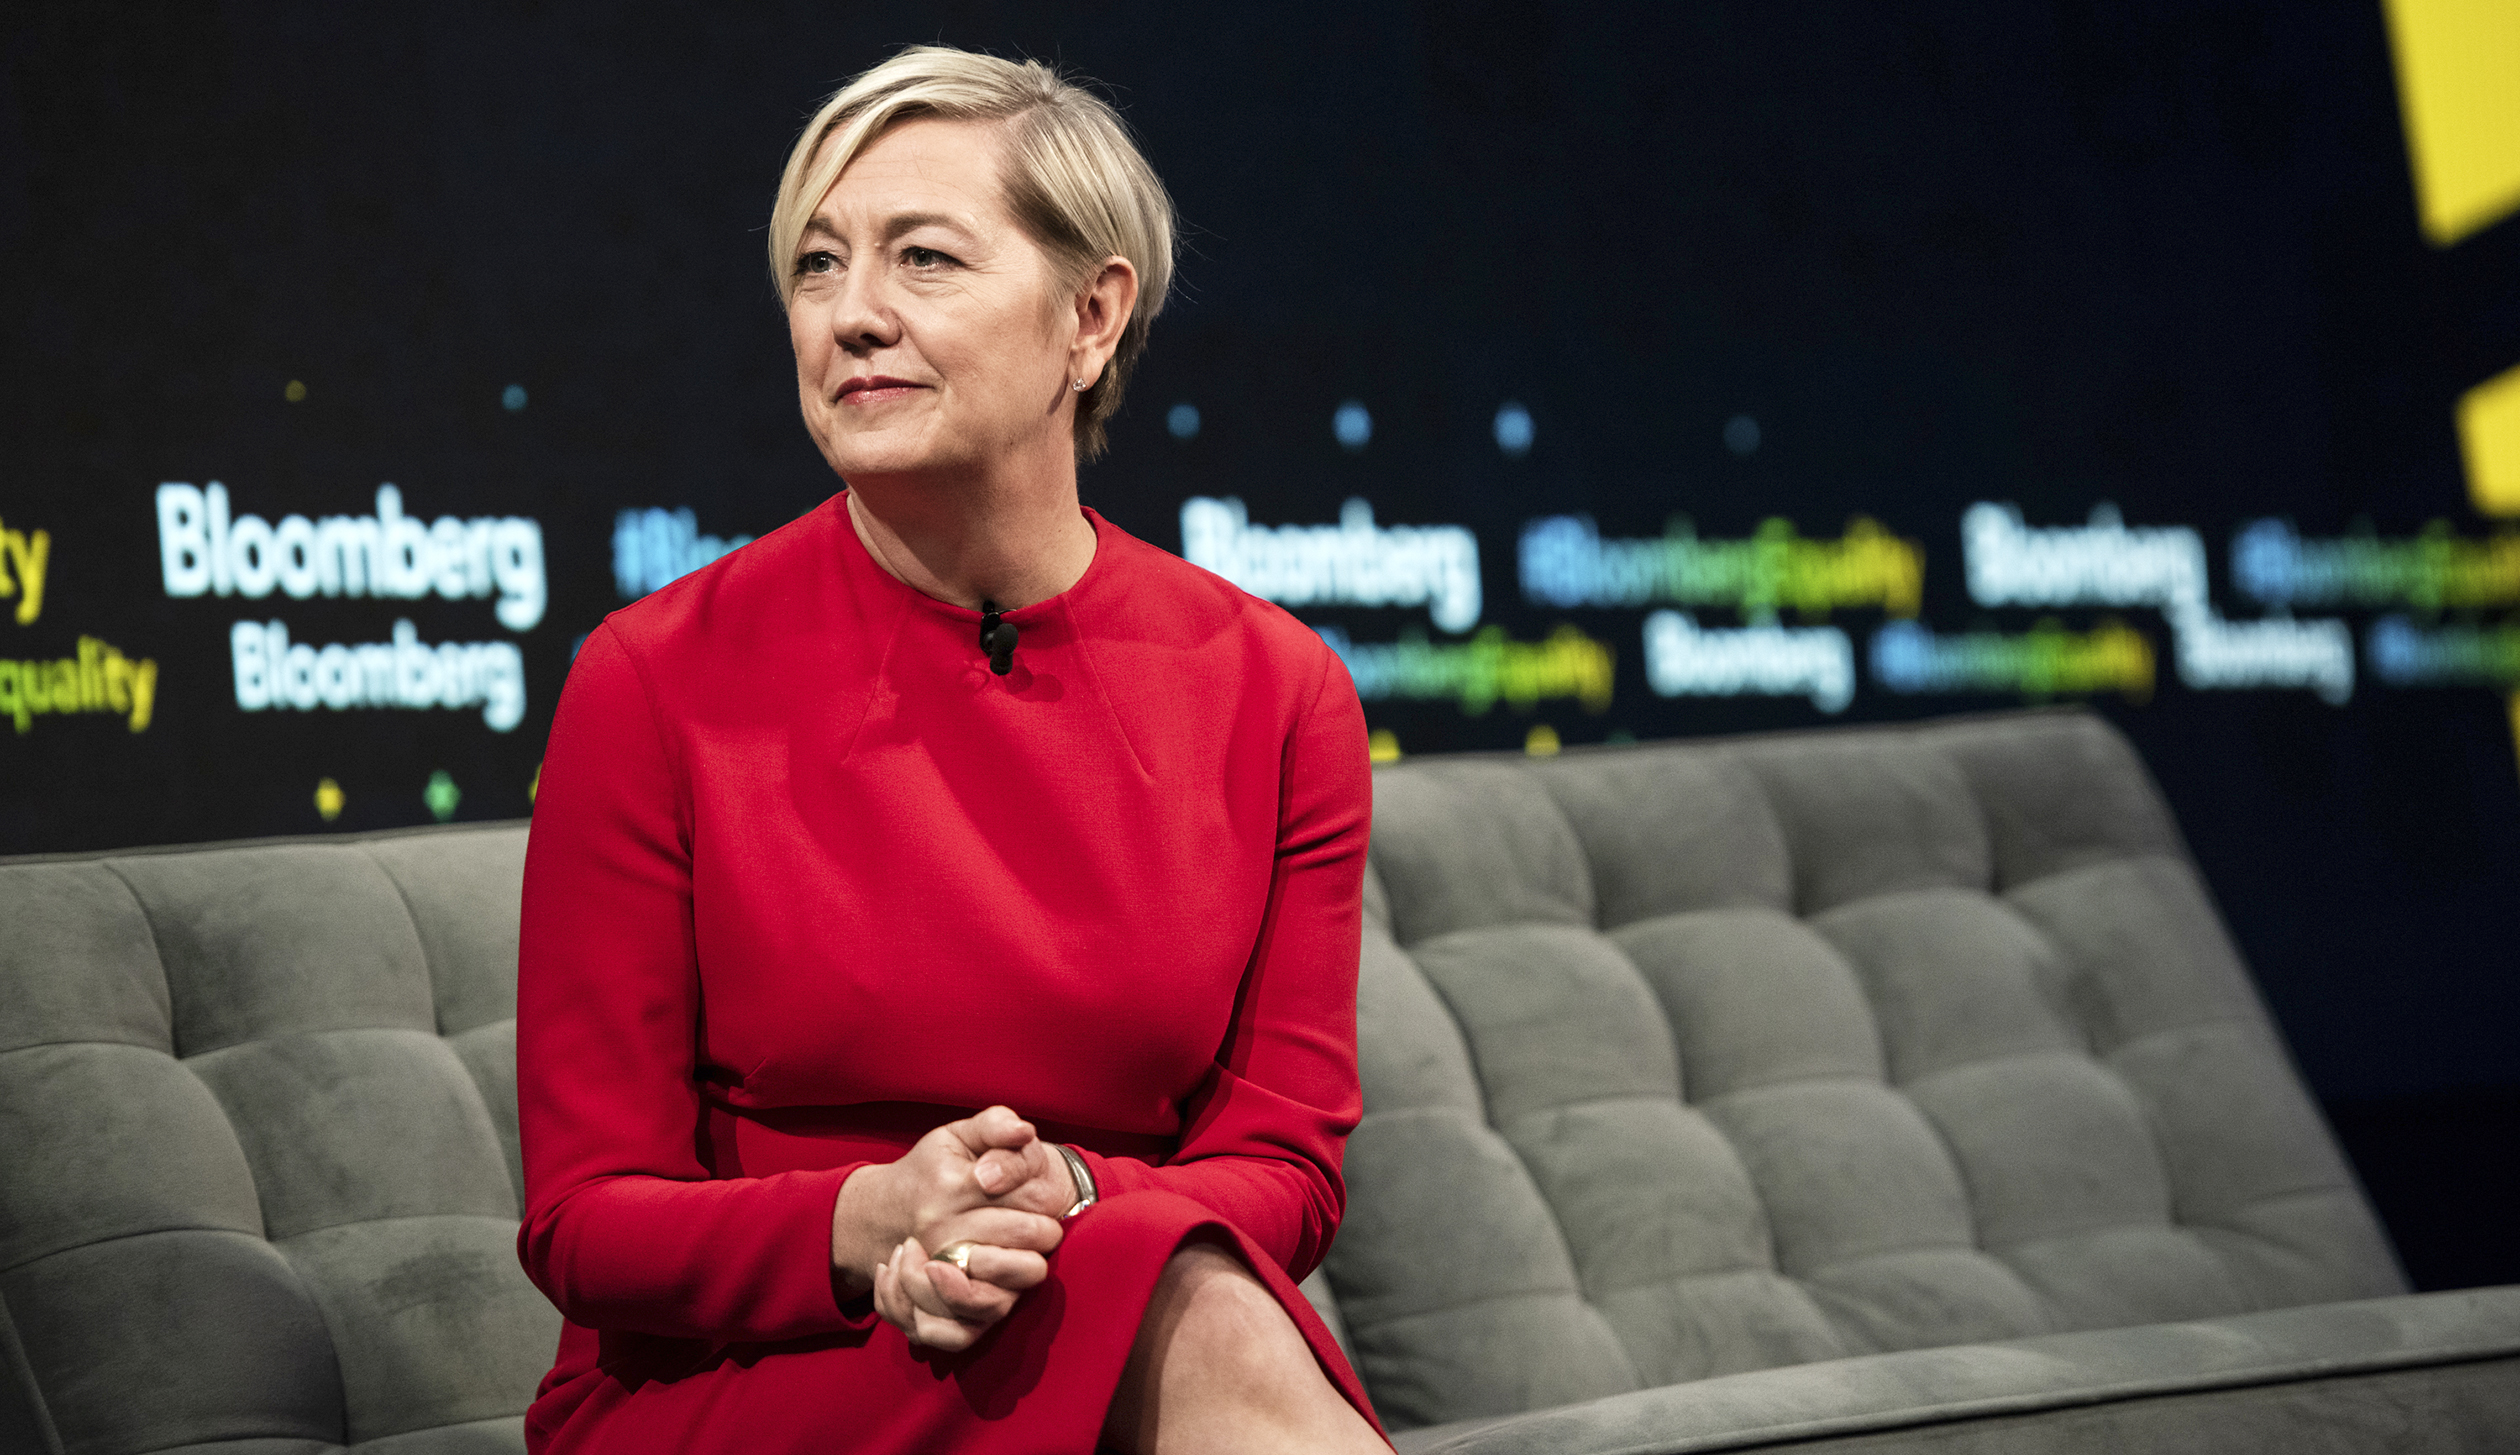 Key Speakers At The Bloomberg Live 'Business Of Equality' Event